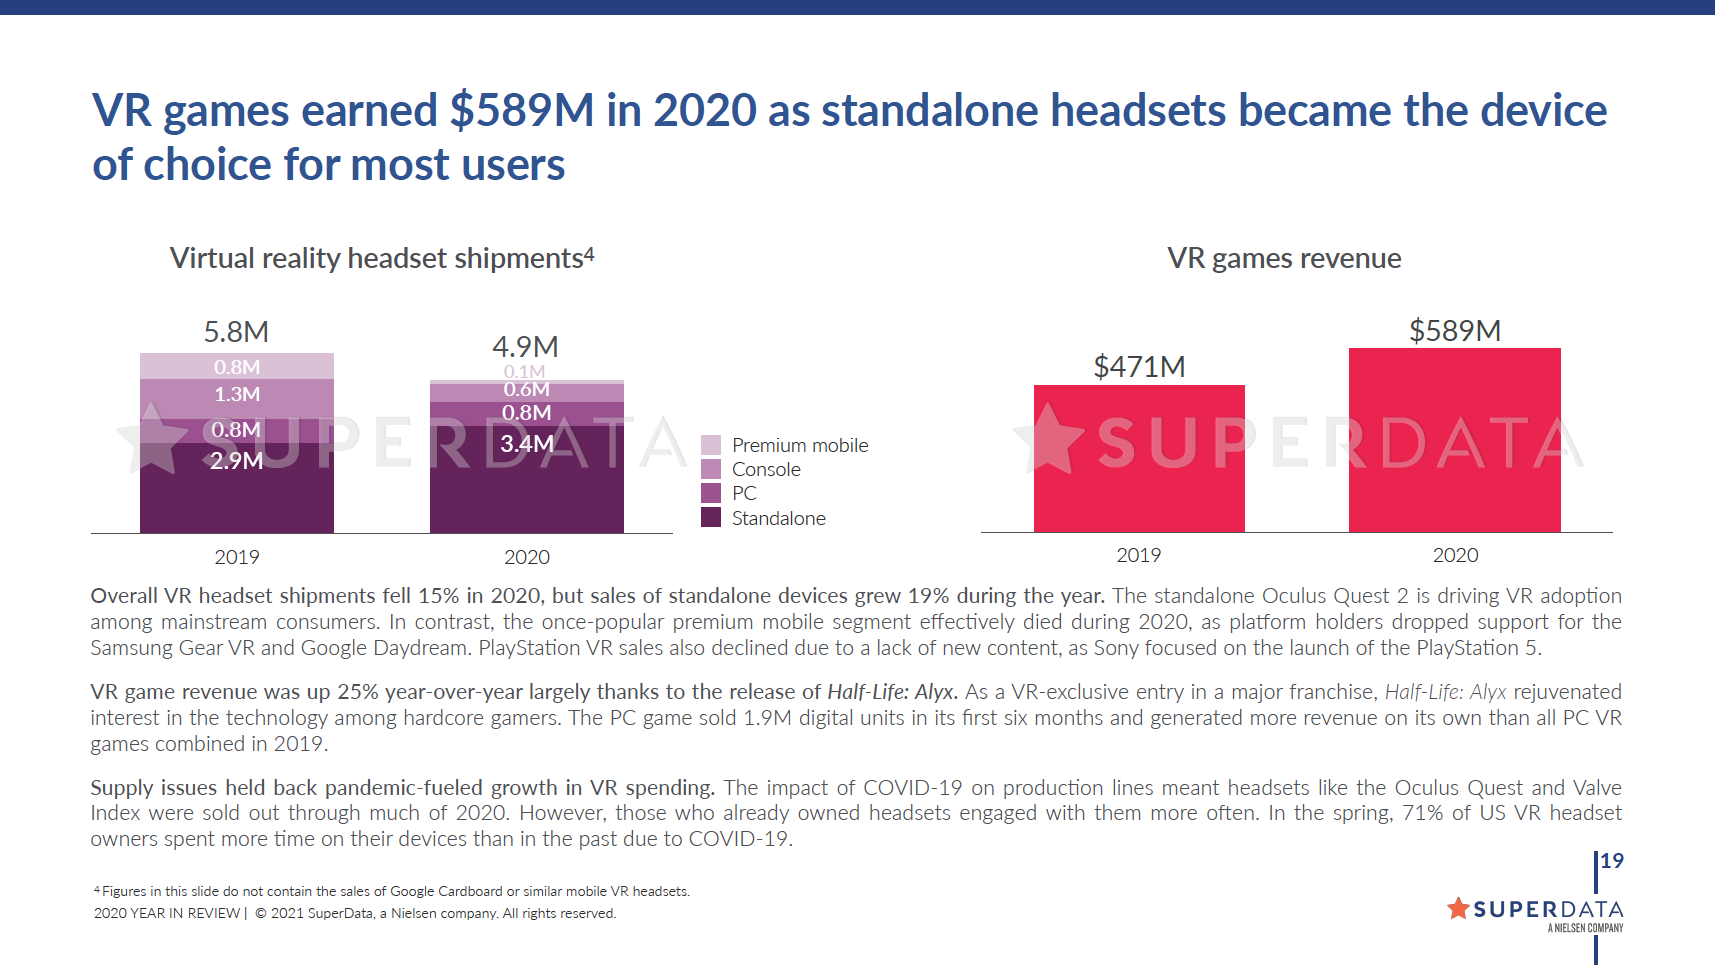 VR games earned $589M in 2020 as standalone headsets became the device of choice for most users